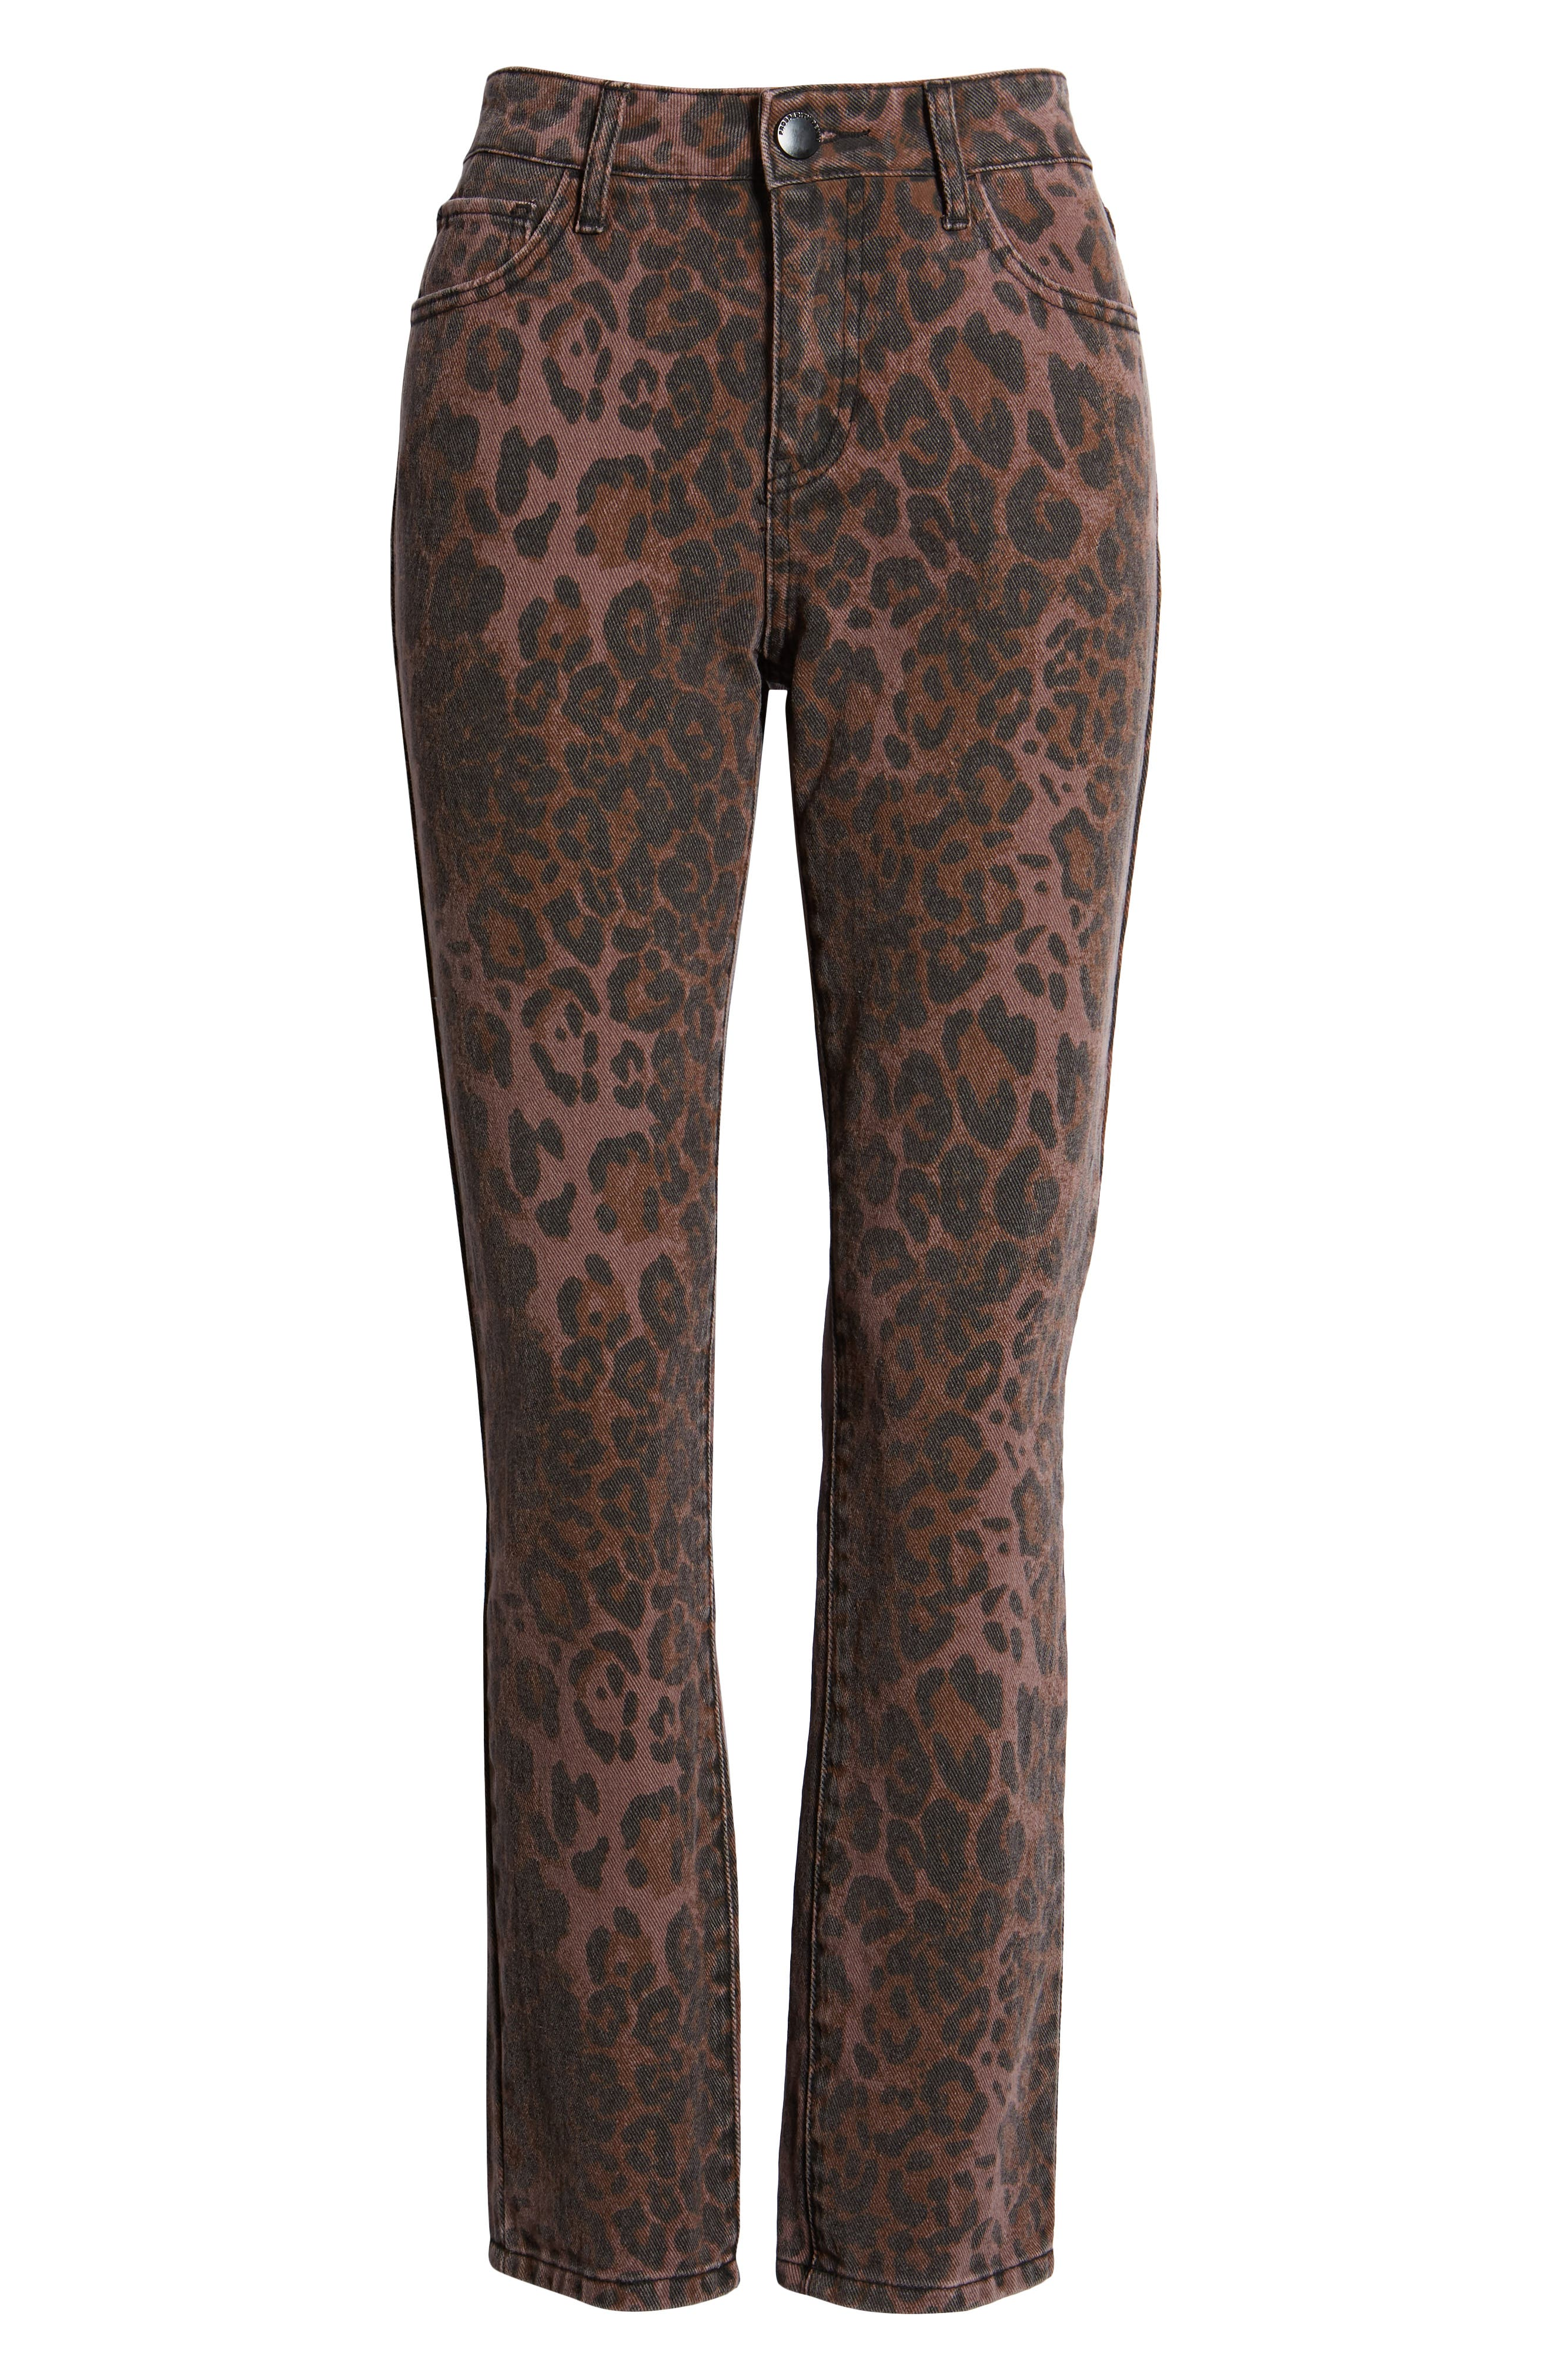 PROSPERITY DENIM, Leopard Print Skinny Jeans, Alternate thumbnail 7, color, LEOPARD